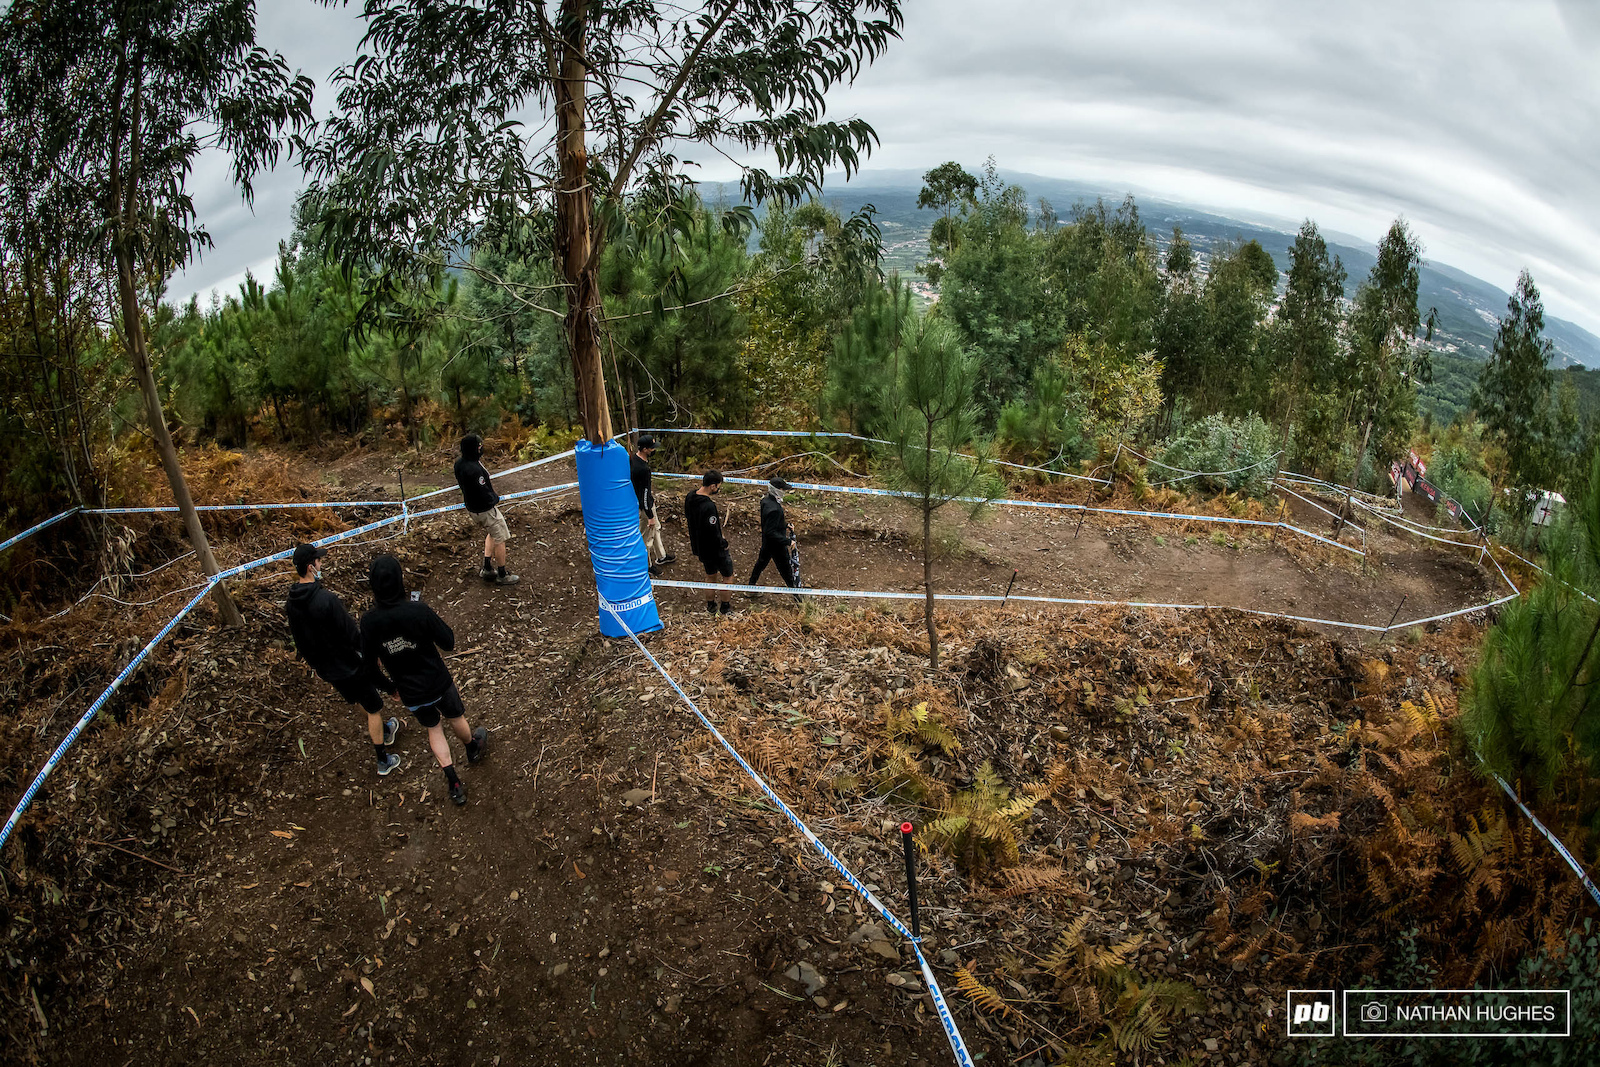 Lousa is one fast and fun looking DH course no bones about it.